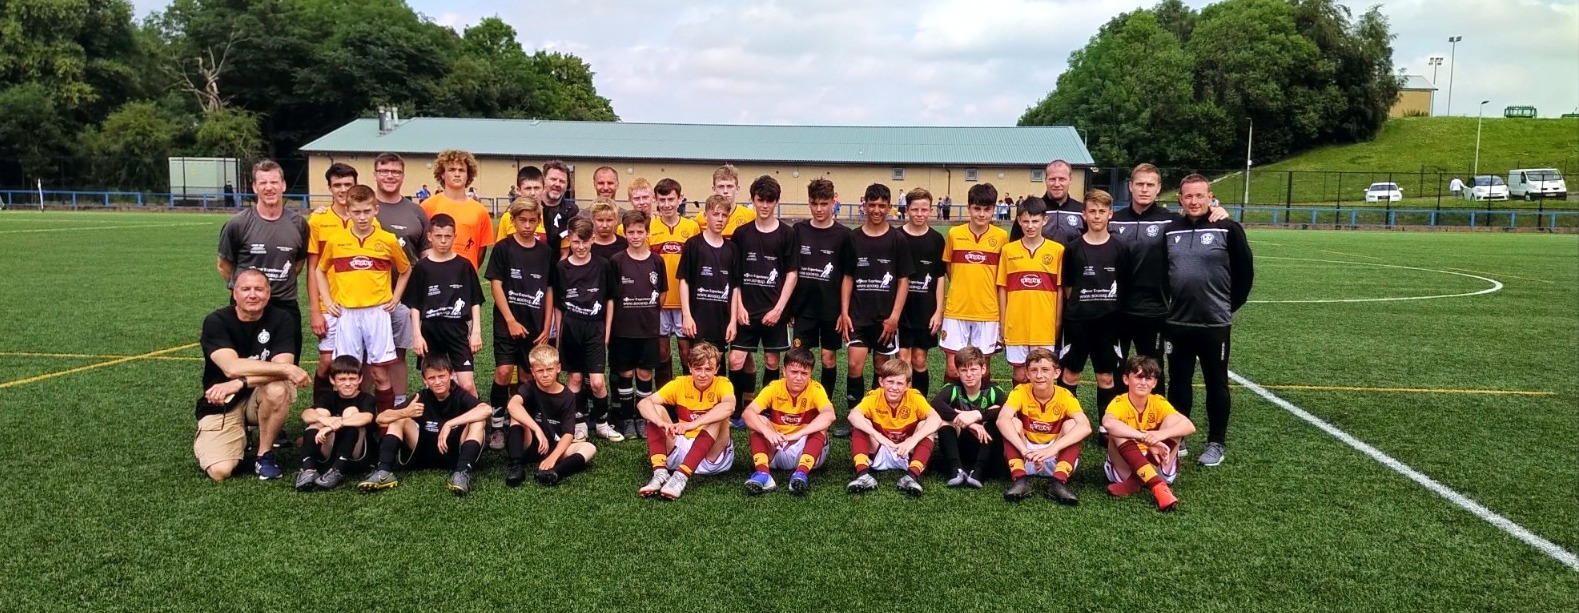 2019 YOUTH TEAMS IN UK